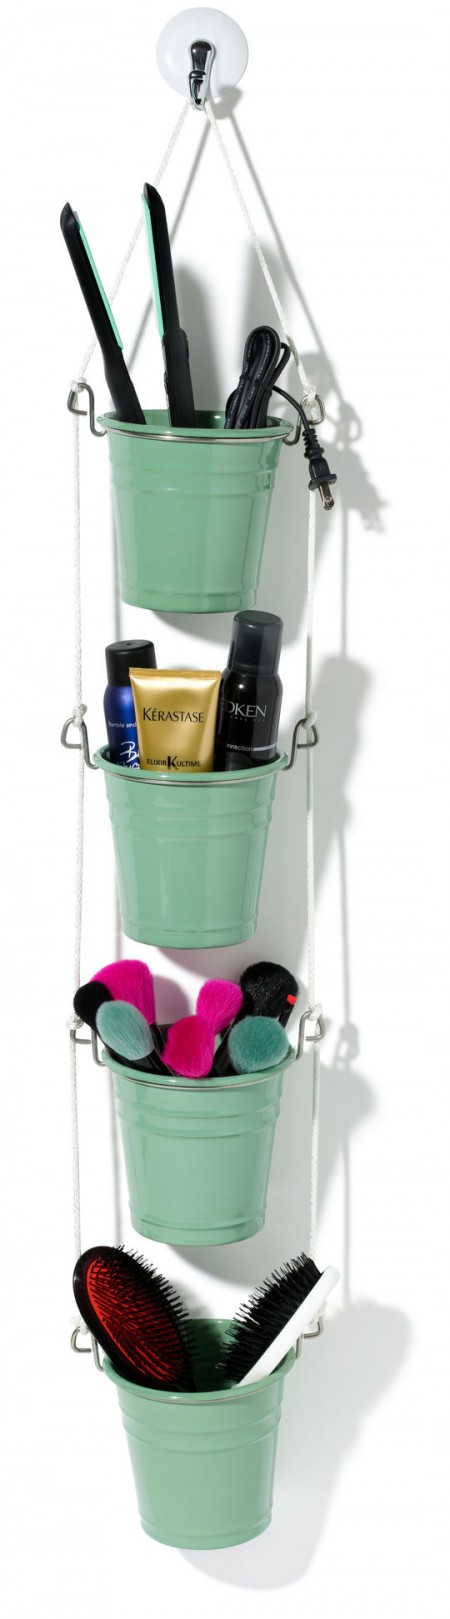 Hanging Ikea Fintorp Utensil Storing A Hair Straightener, Beauty Products,  Makeup Brushes, And Glamour. This Bathroom Storage ...